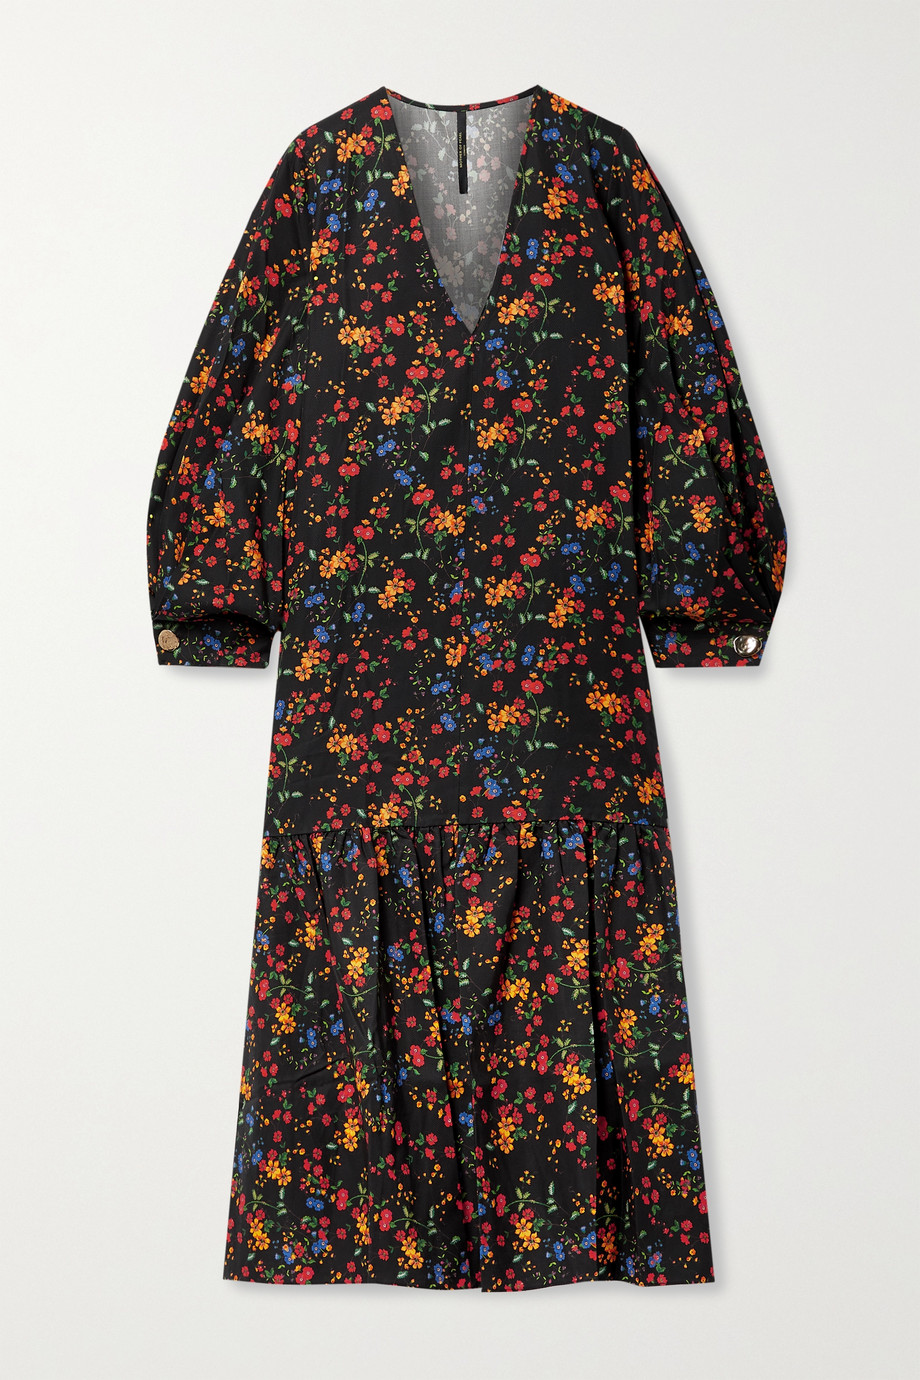 MOTHER OF PEARL + NET SUSTAIN Danica floral-print TENCEL Lyocell-twill midi dress